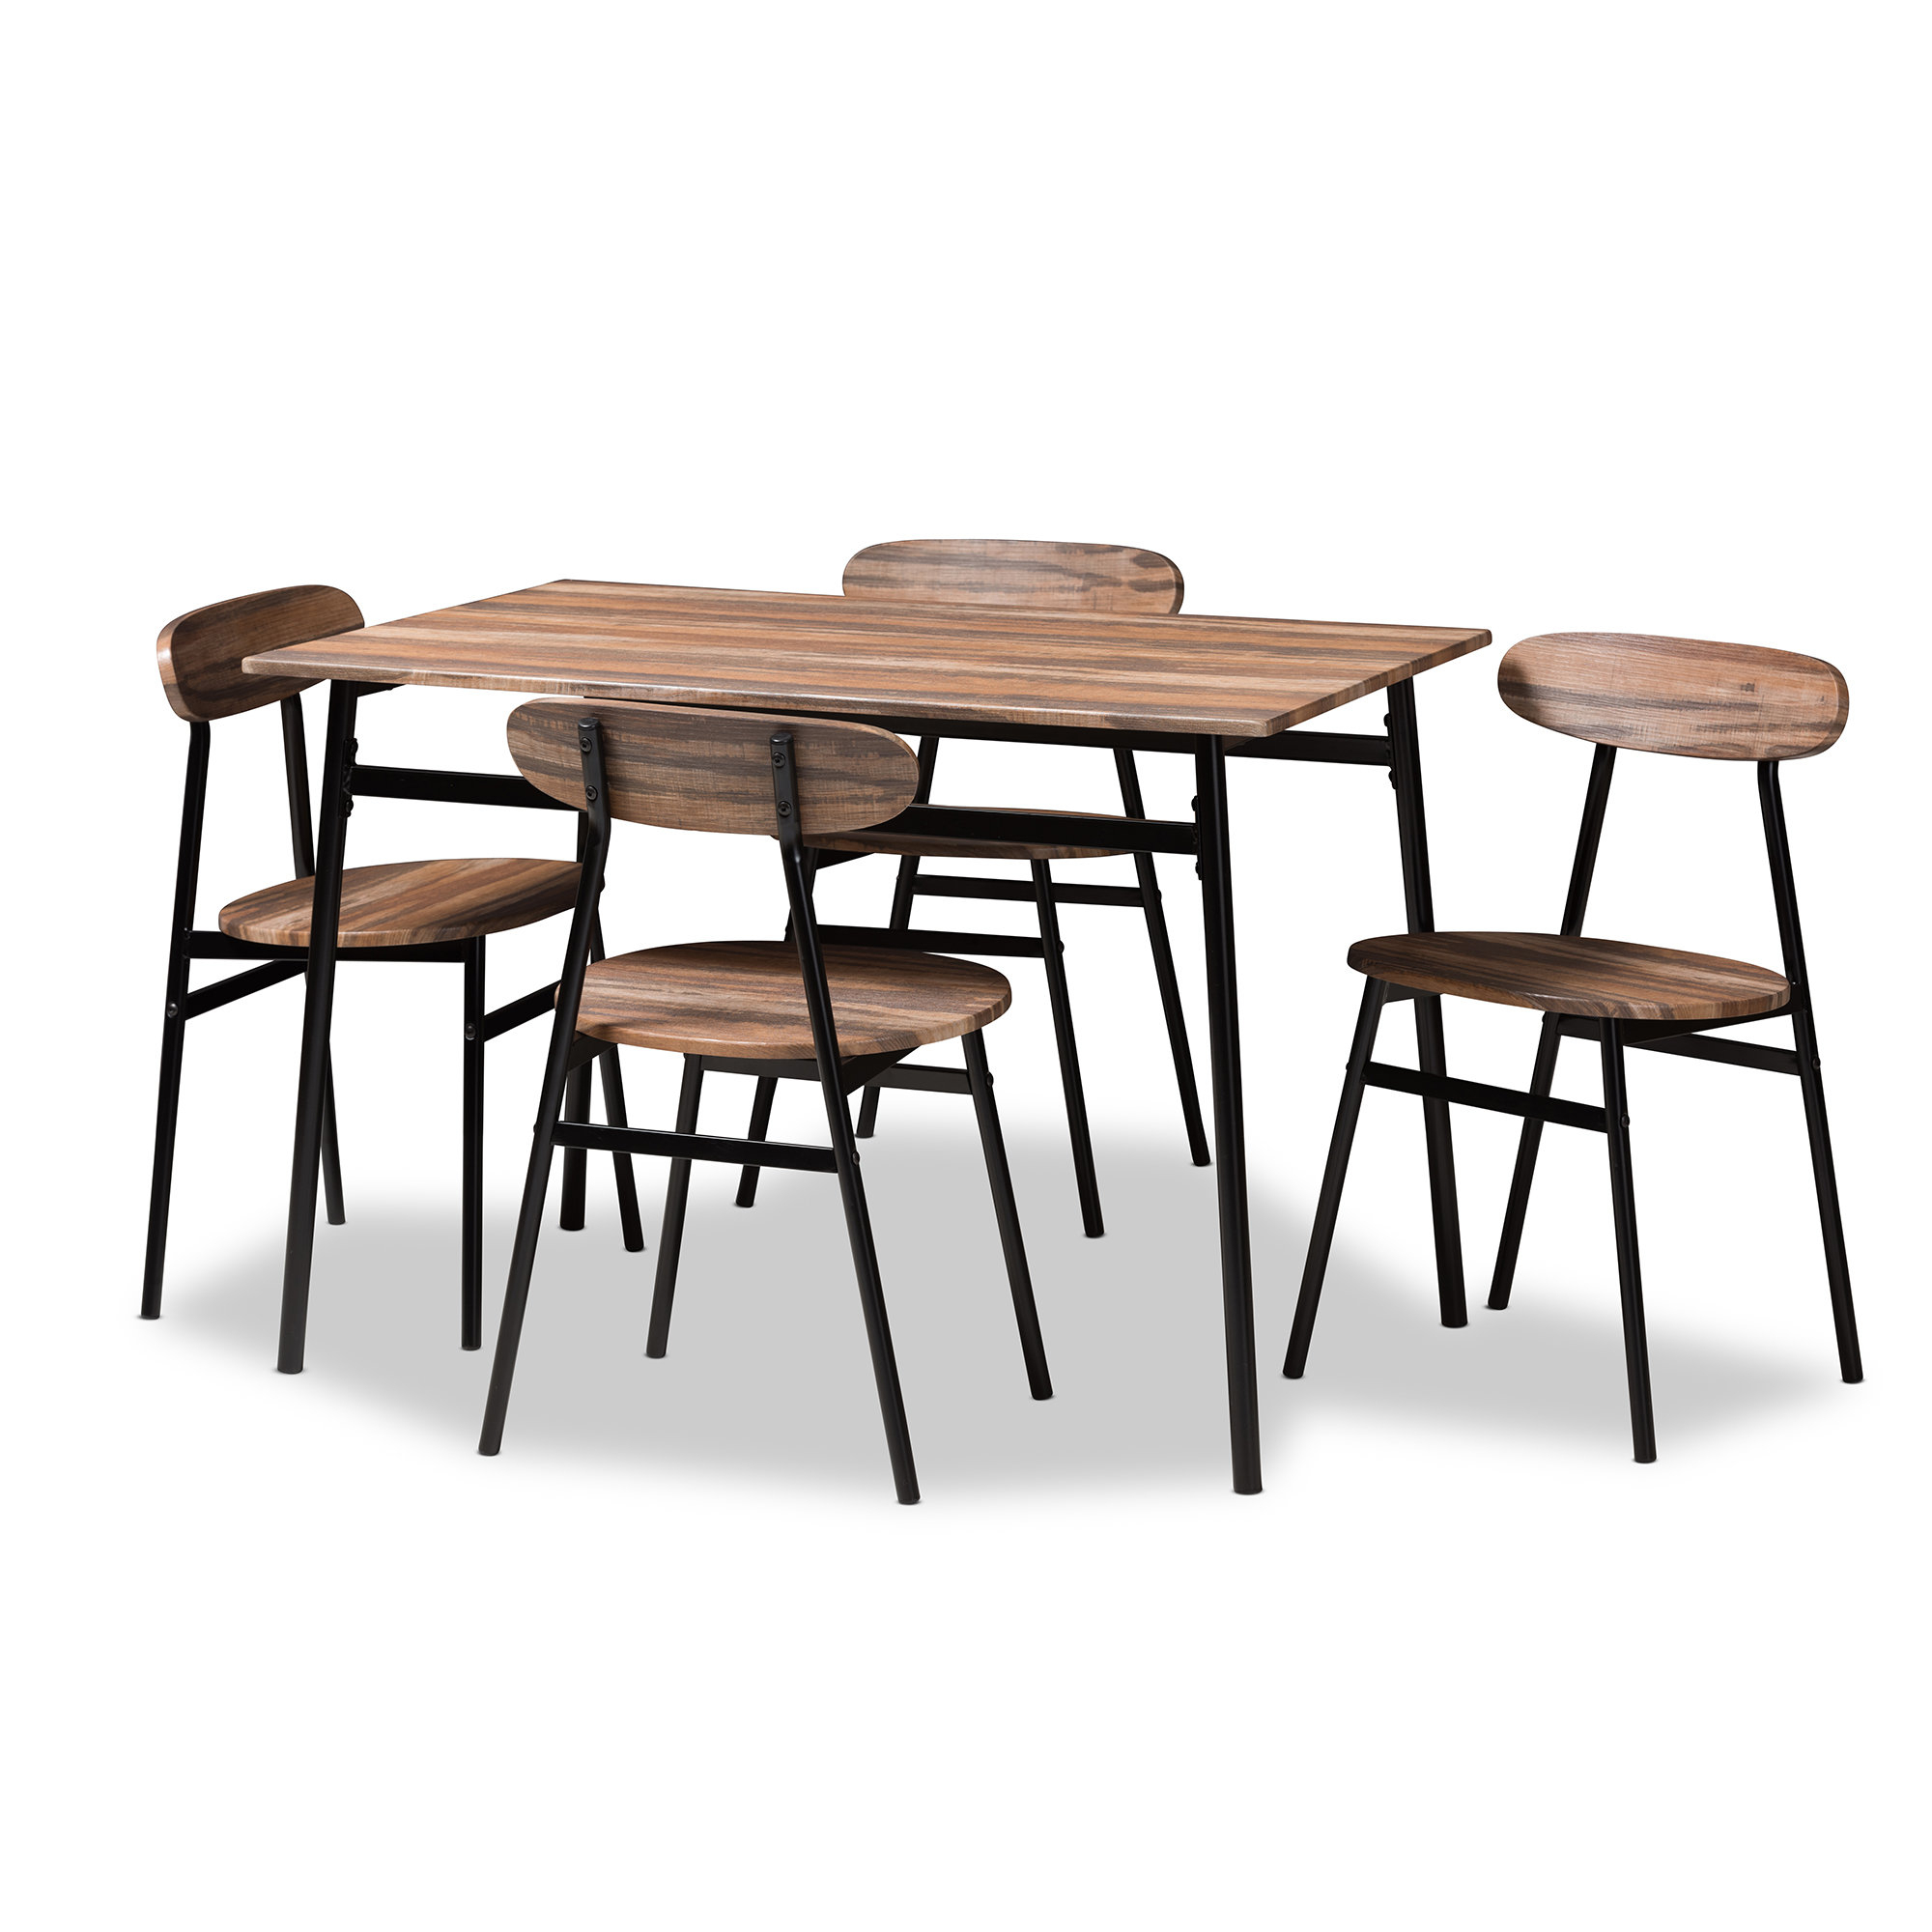 Wayfair Throughout Shepparton Vintage 3 Piece Dining Sets (View 8 of 20)